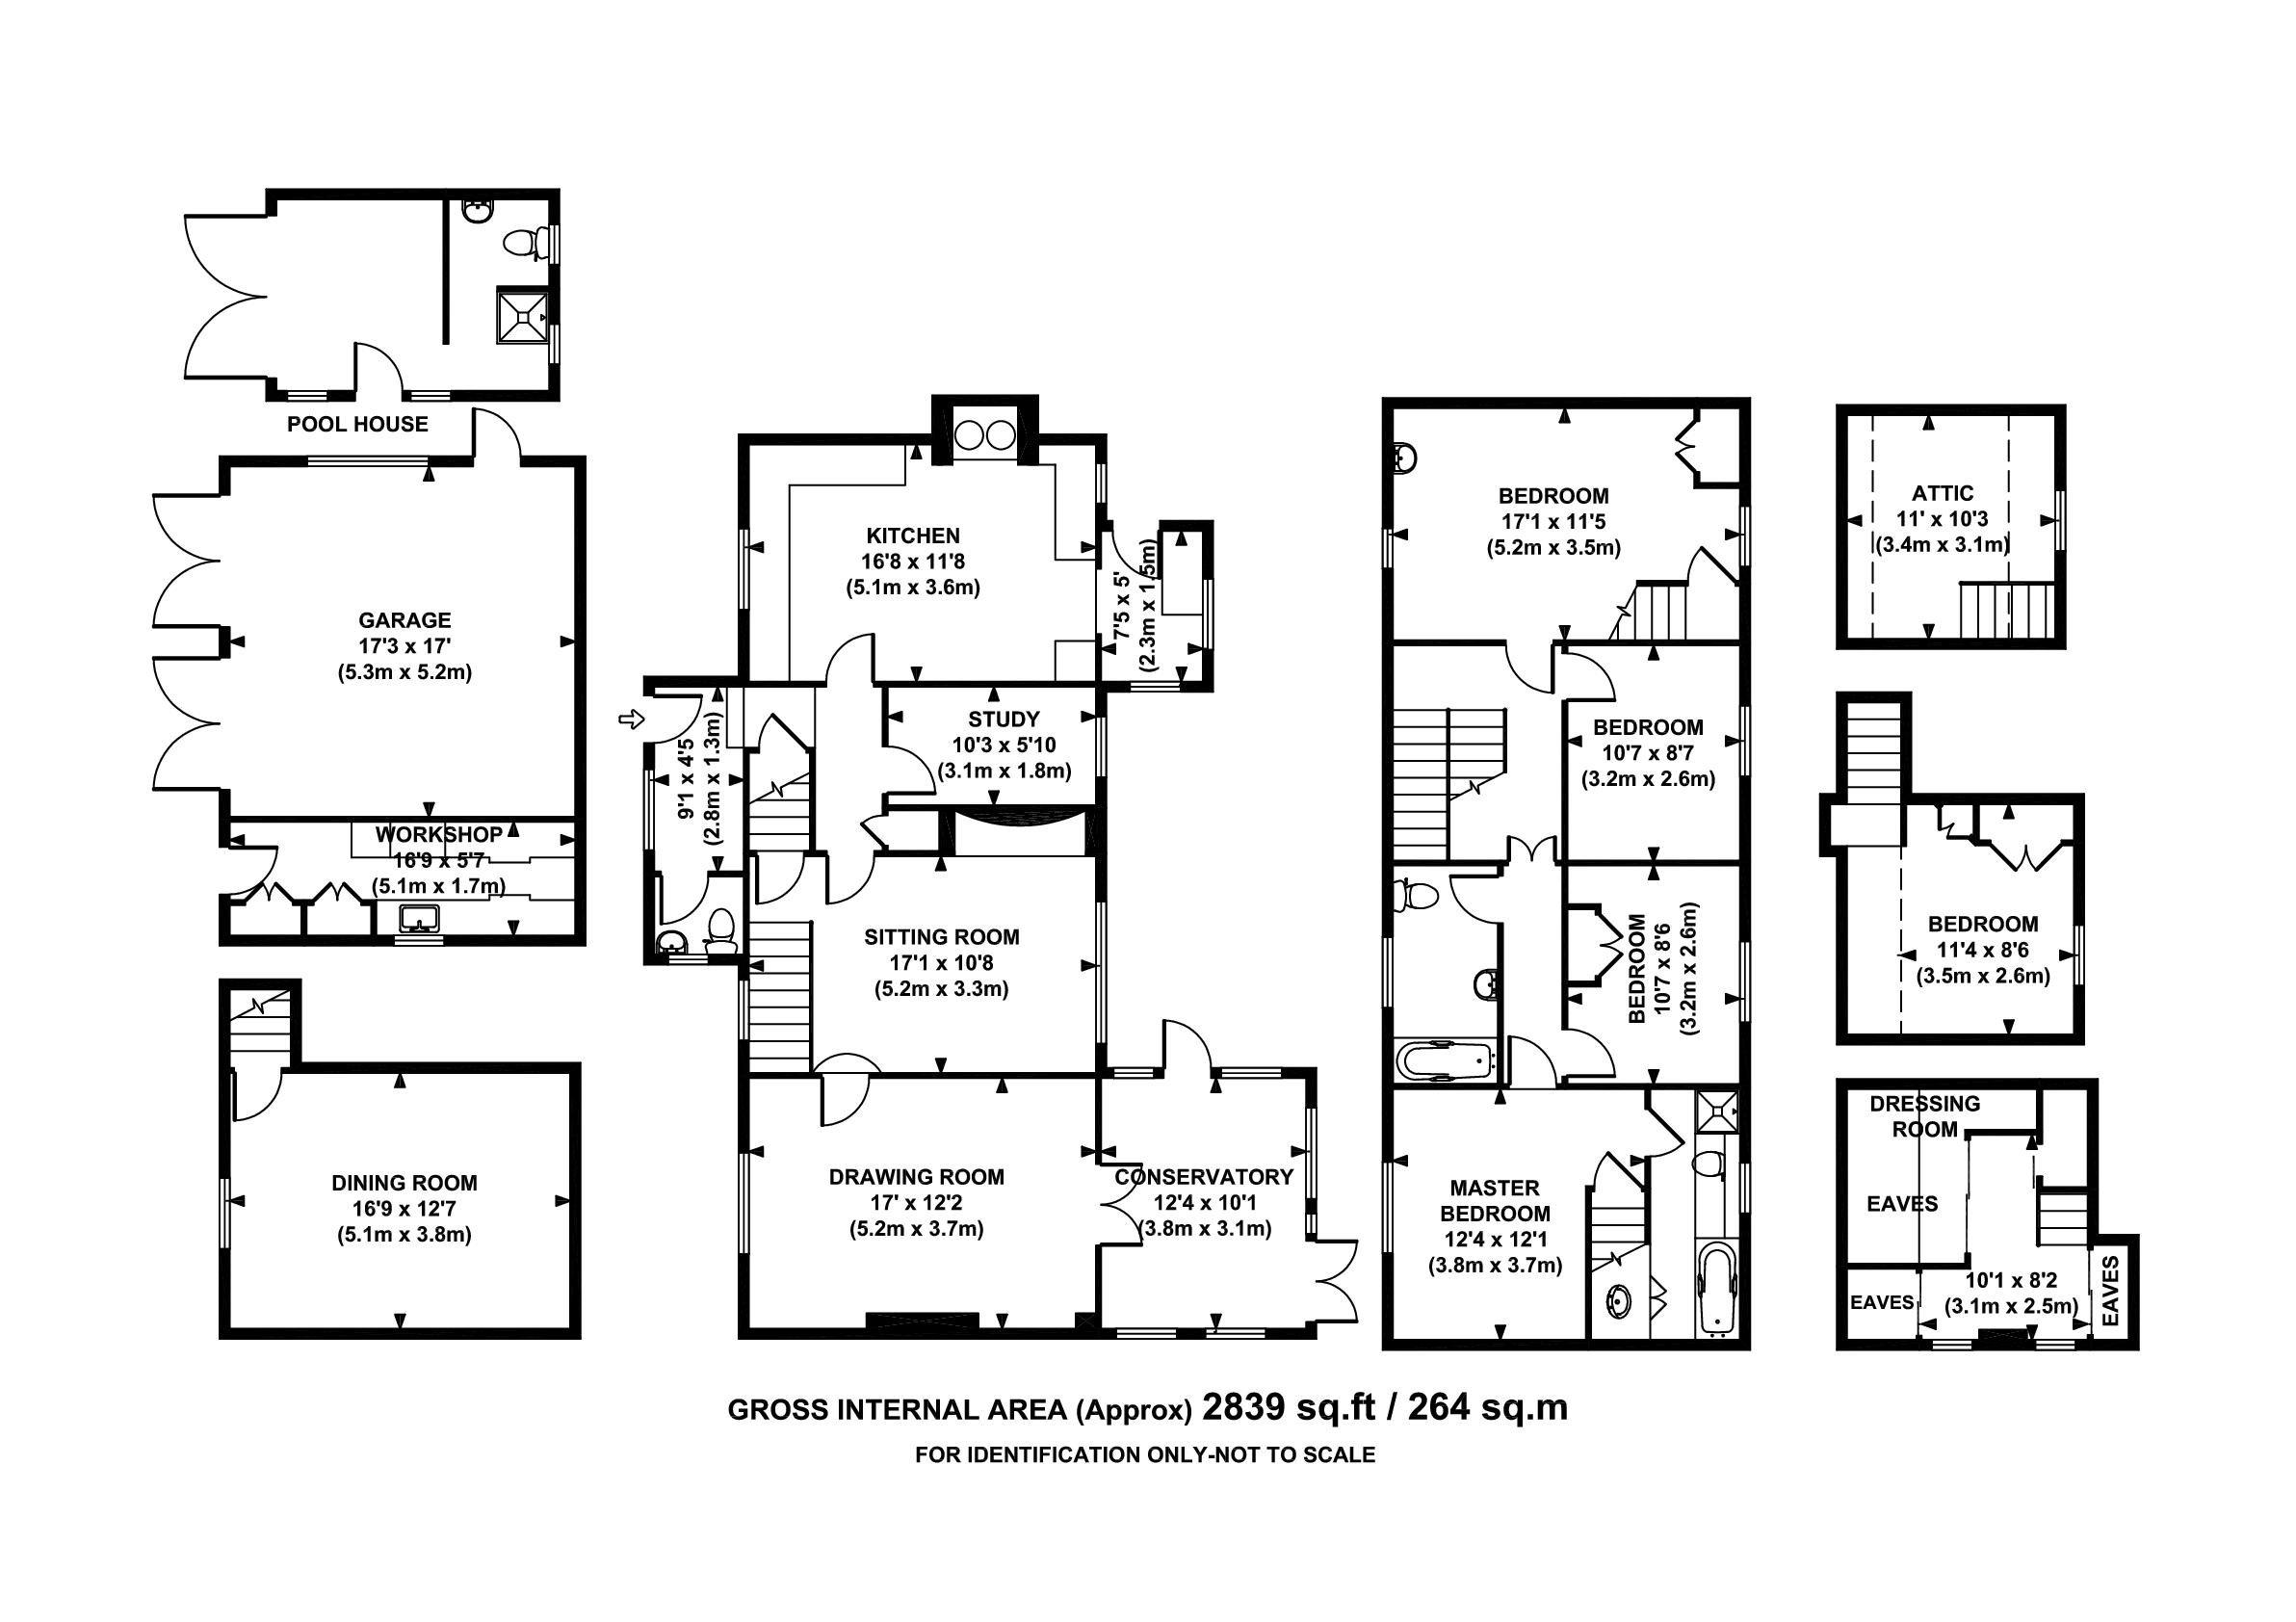 Pegg House Buckland Hp22 5 Bedroom Property To Rent 45310984 Primelocation